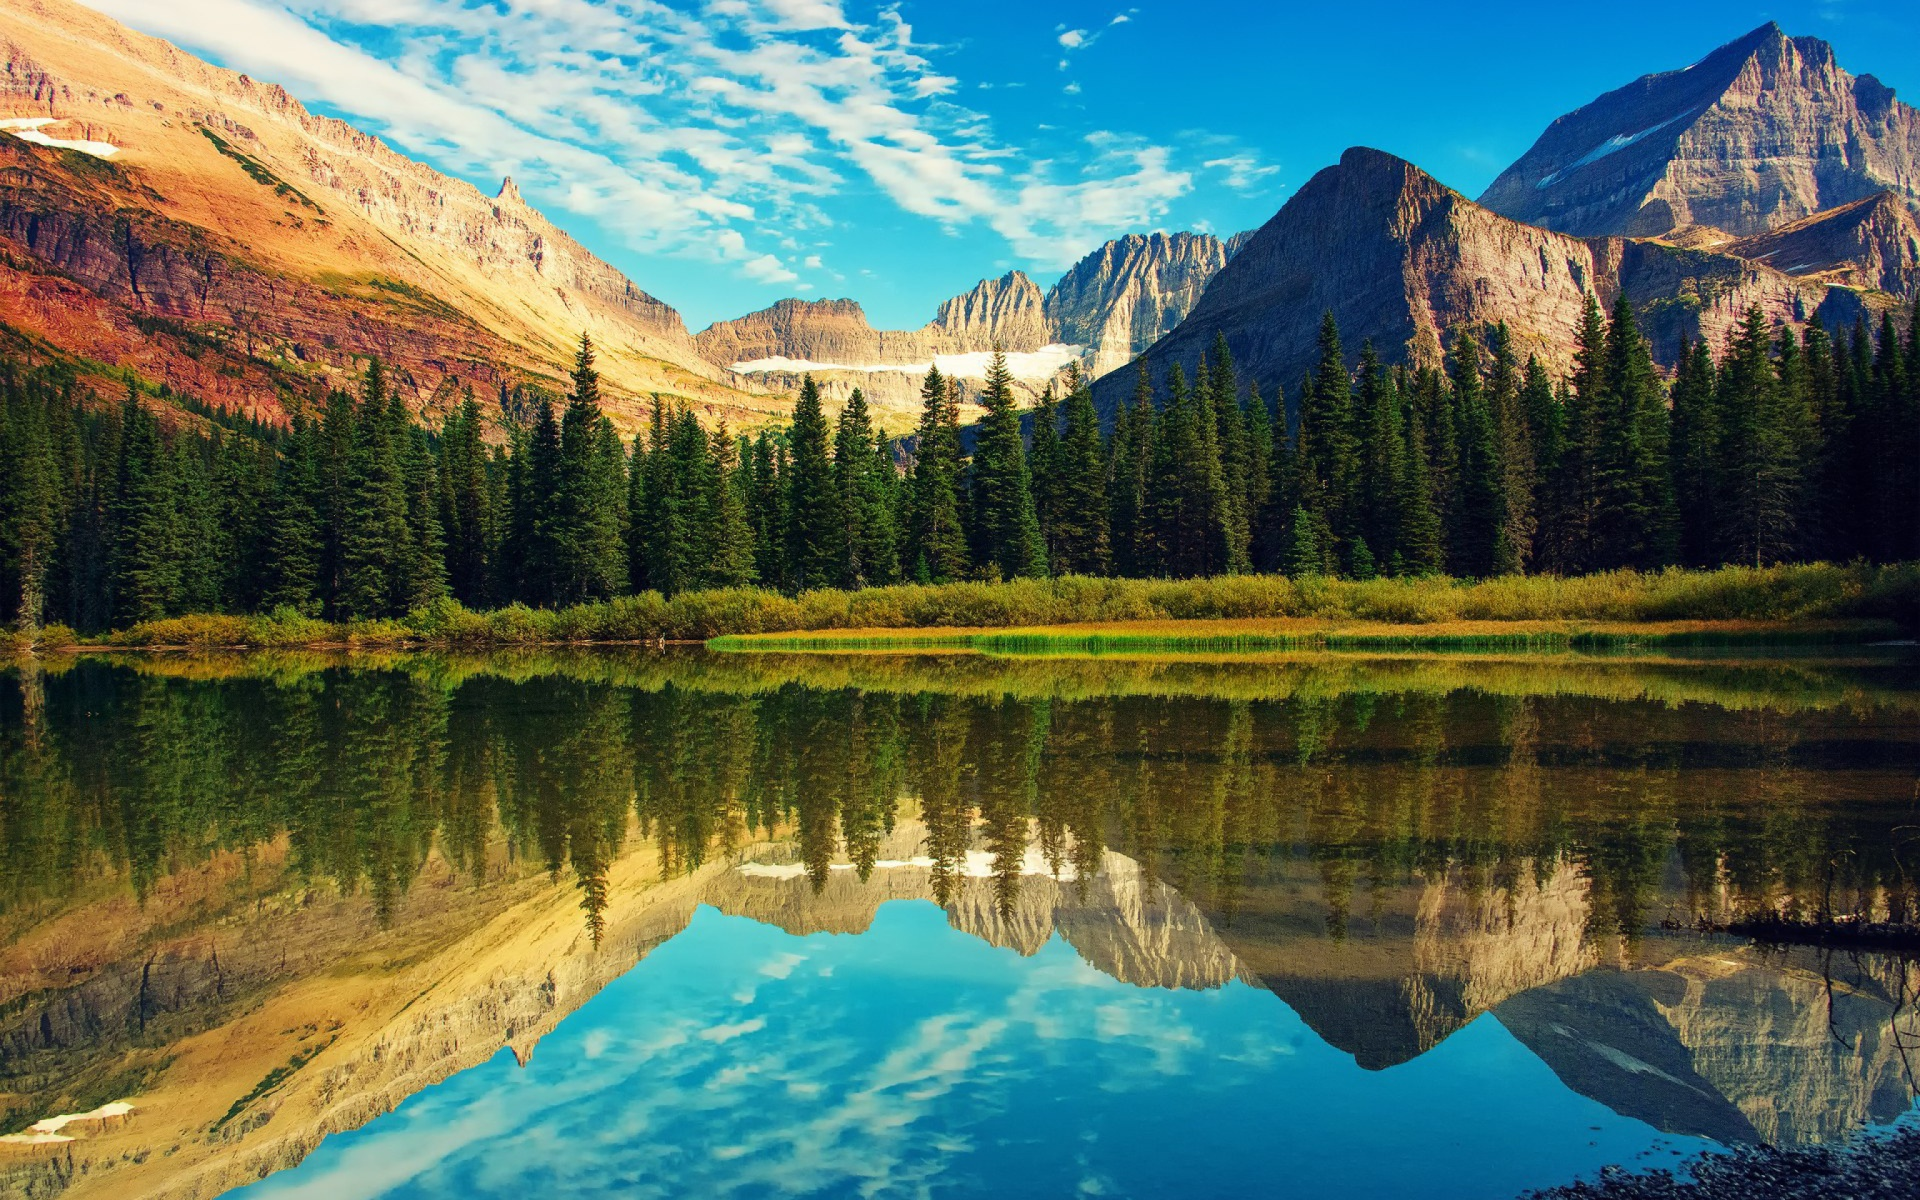 Cool 3d Car Wallpapers Glacier National Park In Usa Wallpaper For Widescreen